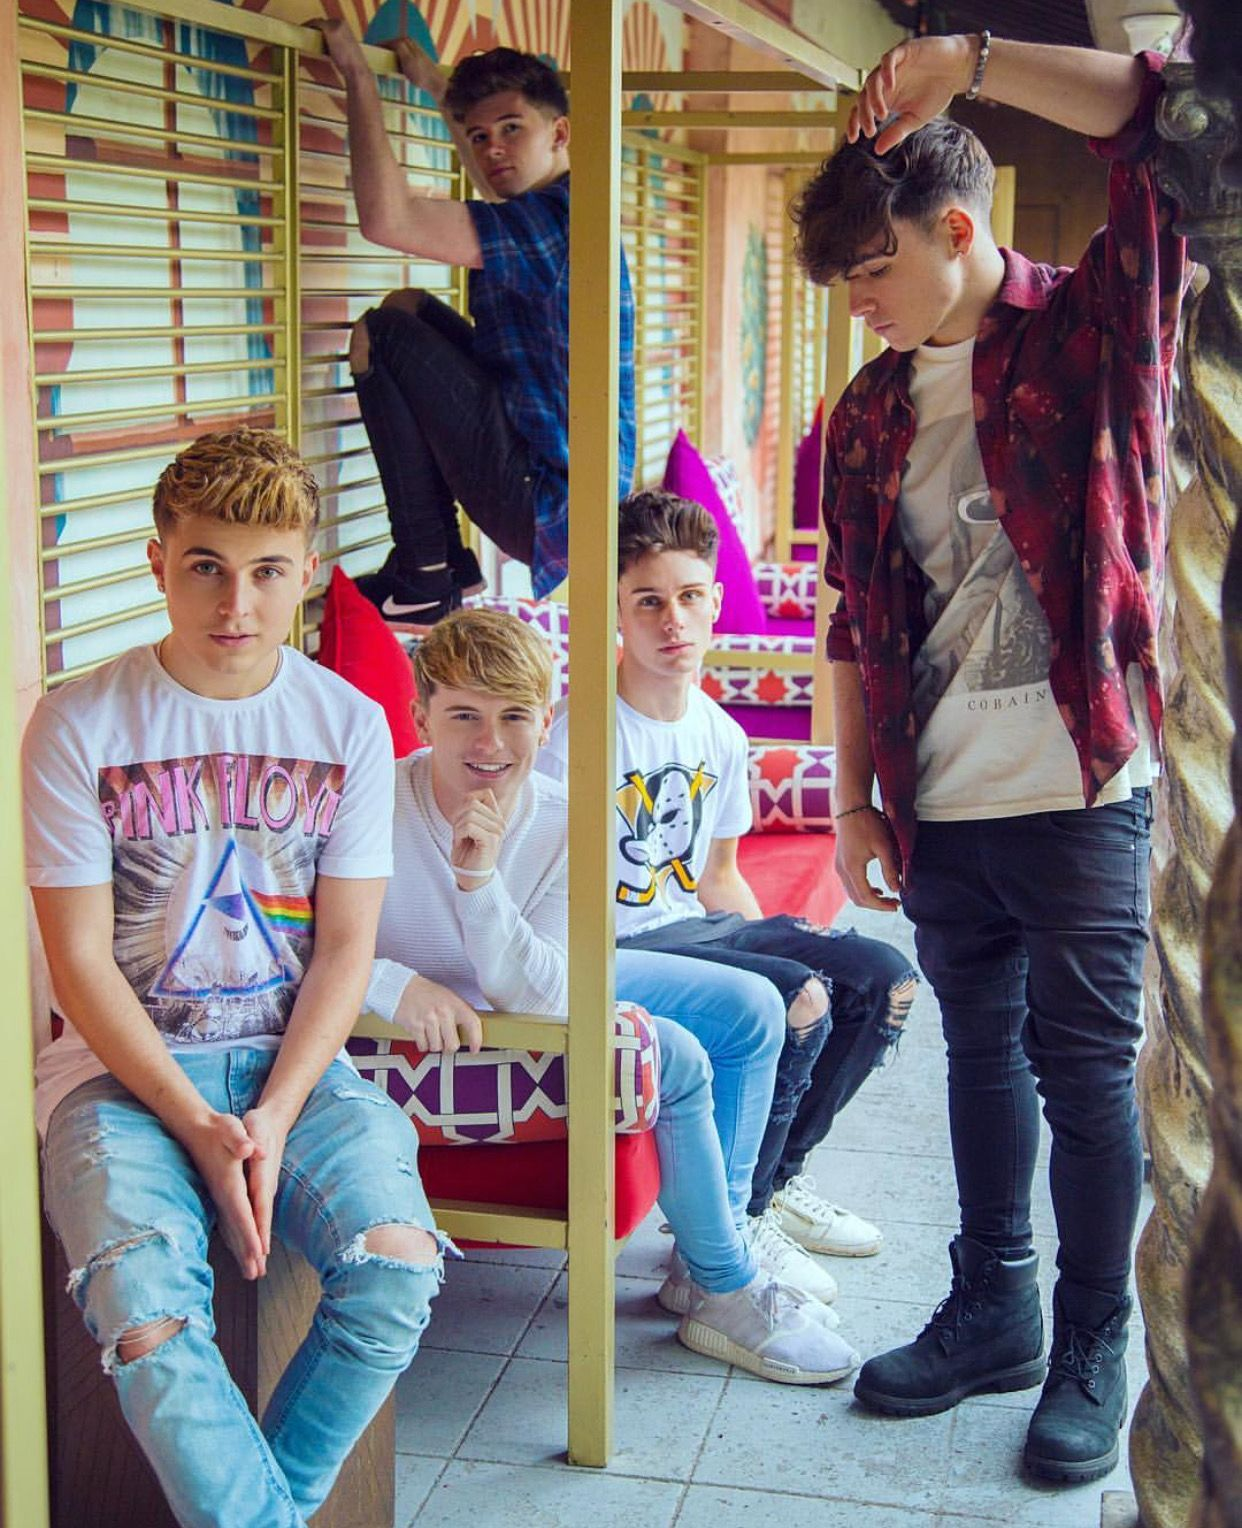 Rye Is In Your Average Boyband Pose Mikey Is In The Kid Pose Jack